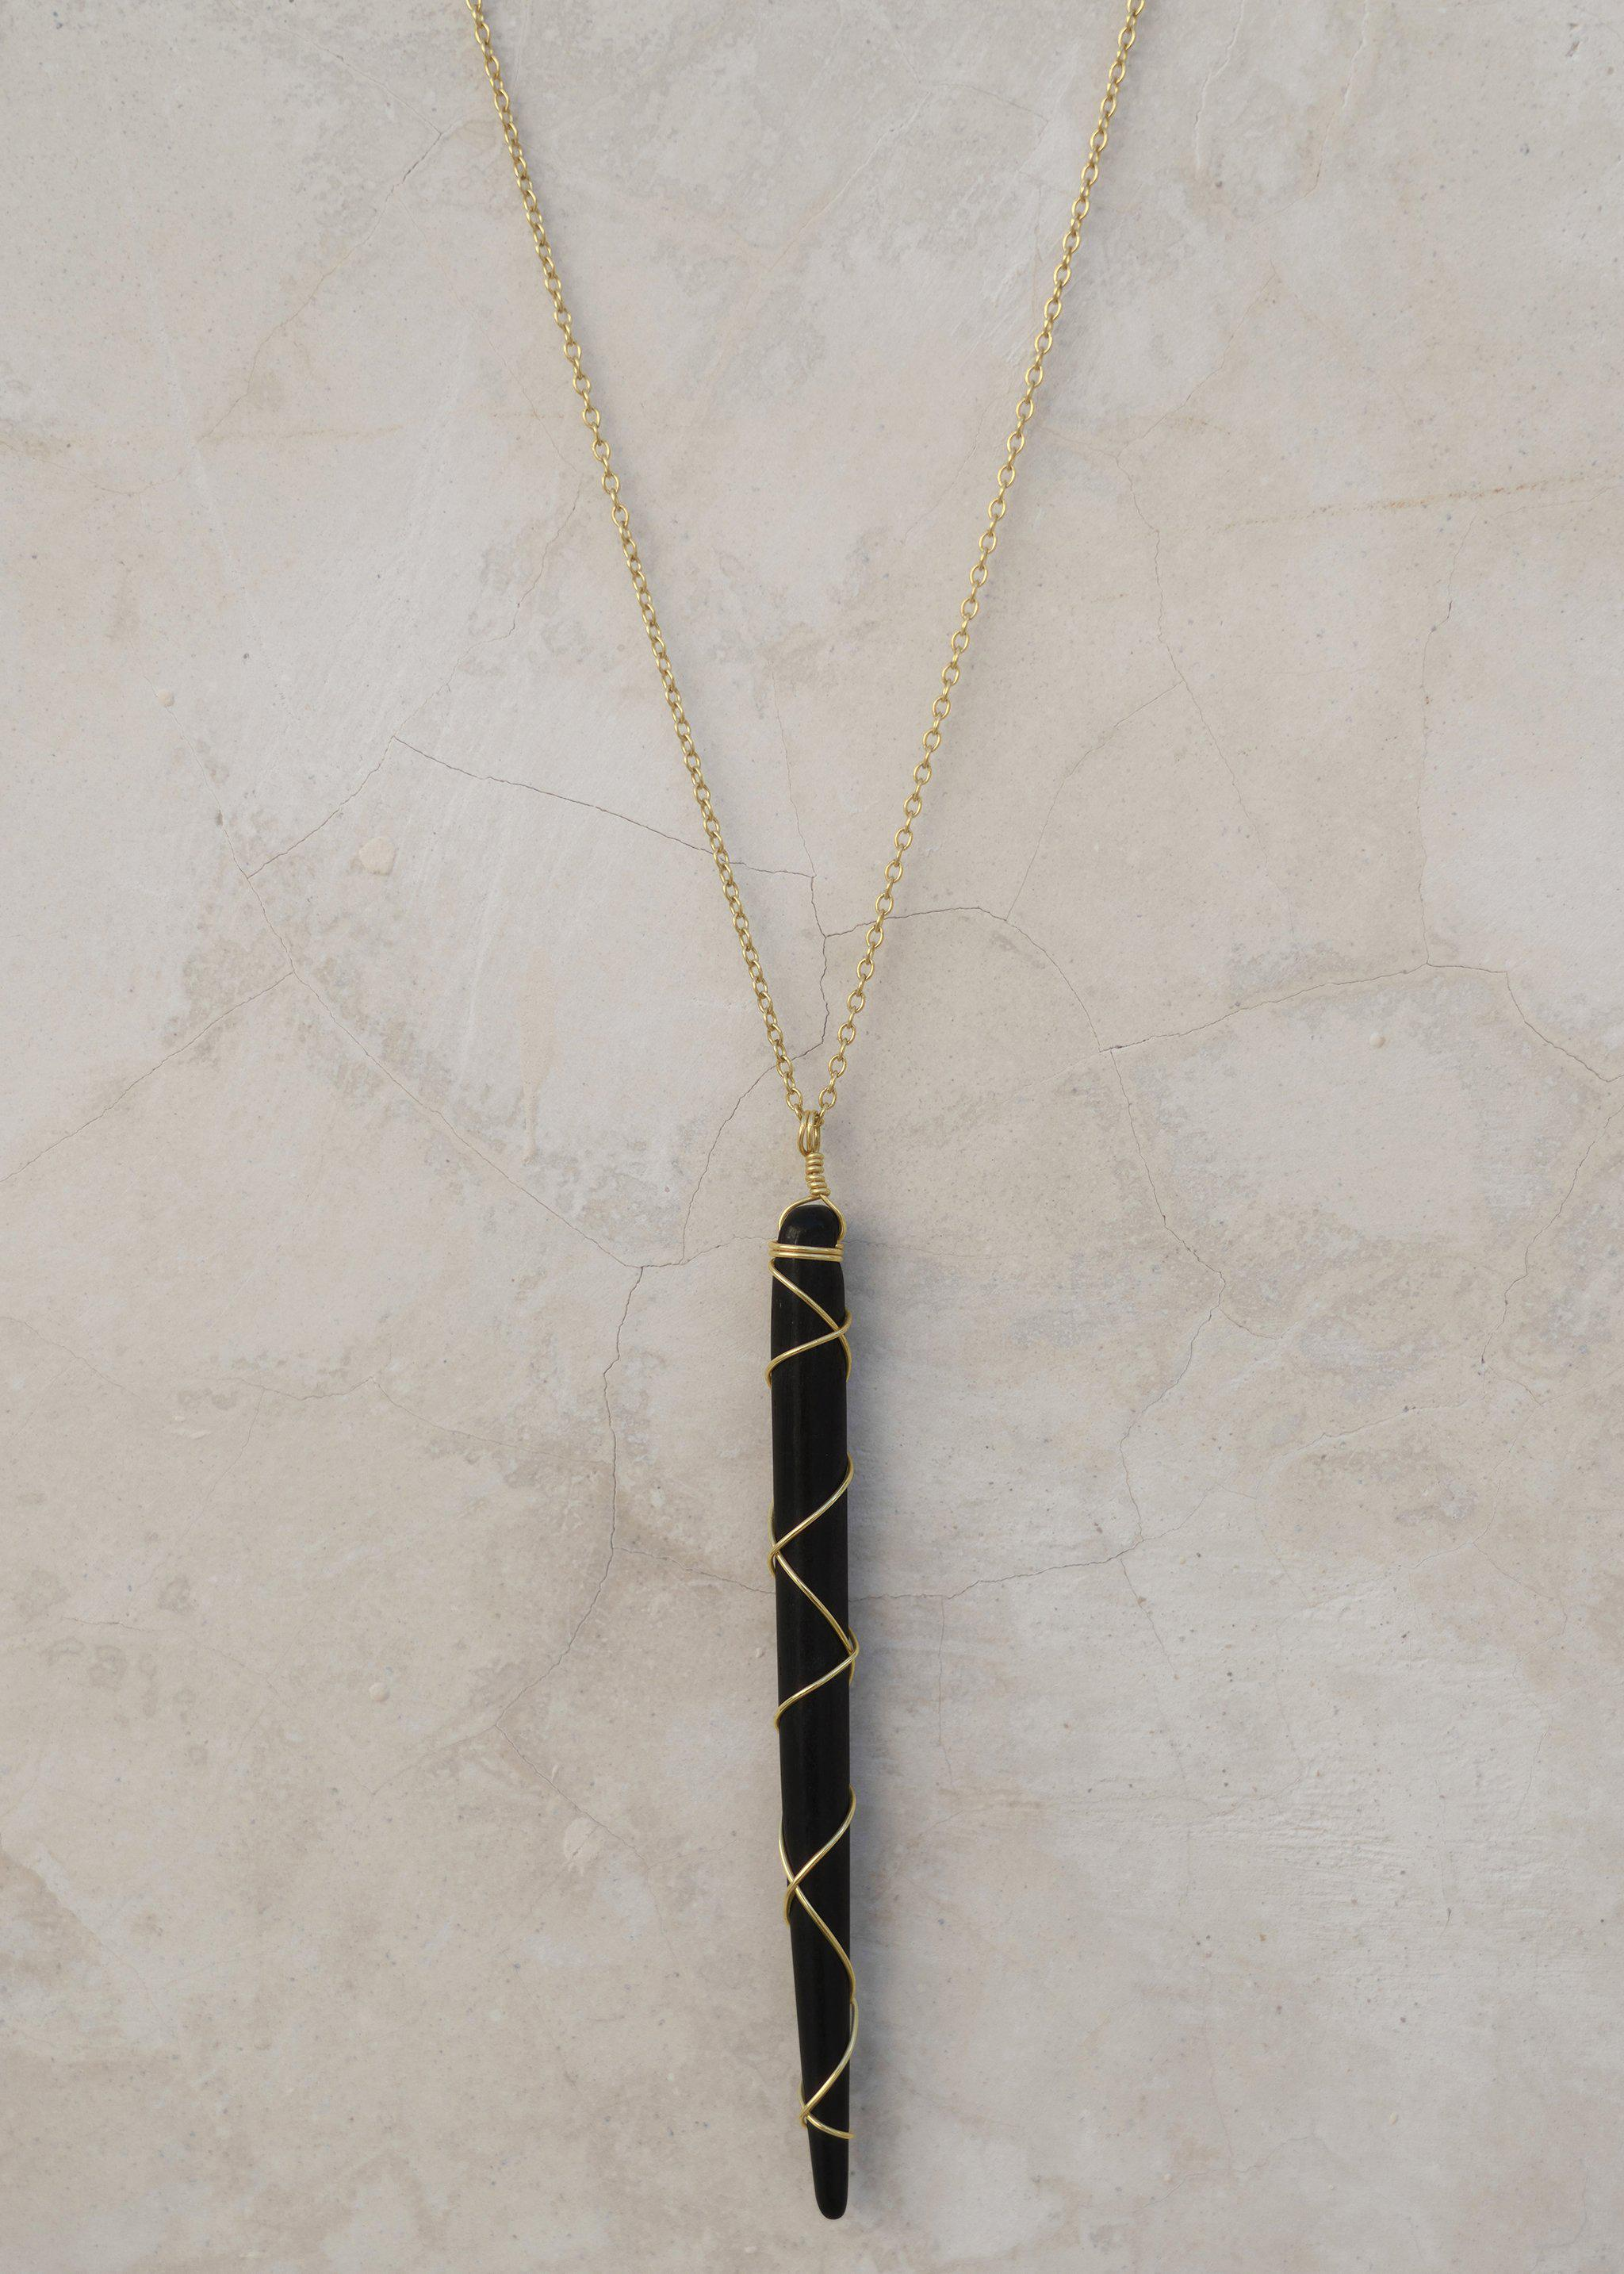 Magic Wand Necklace - Goldish